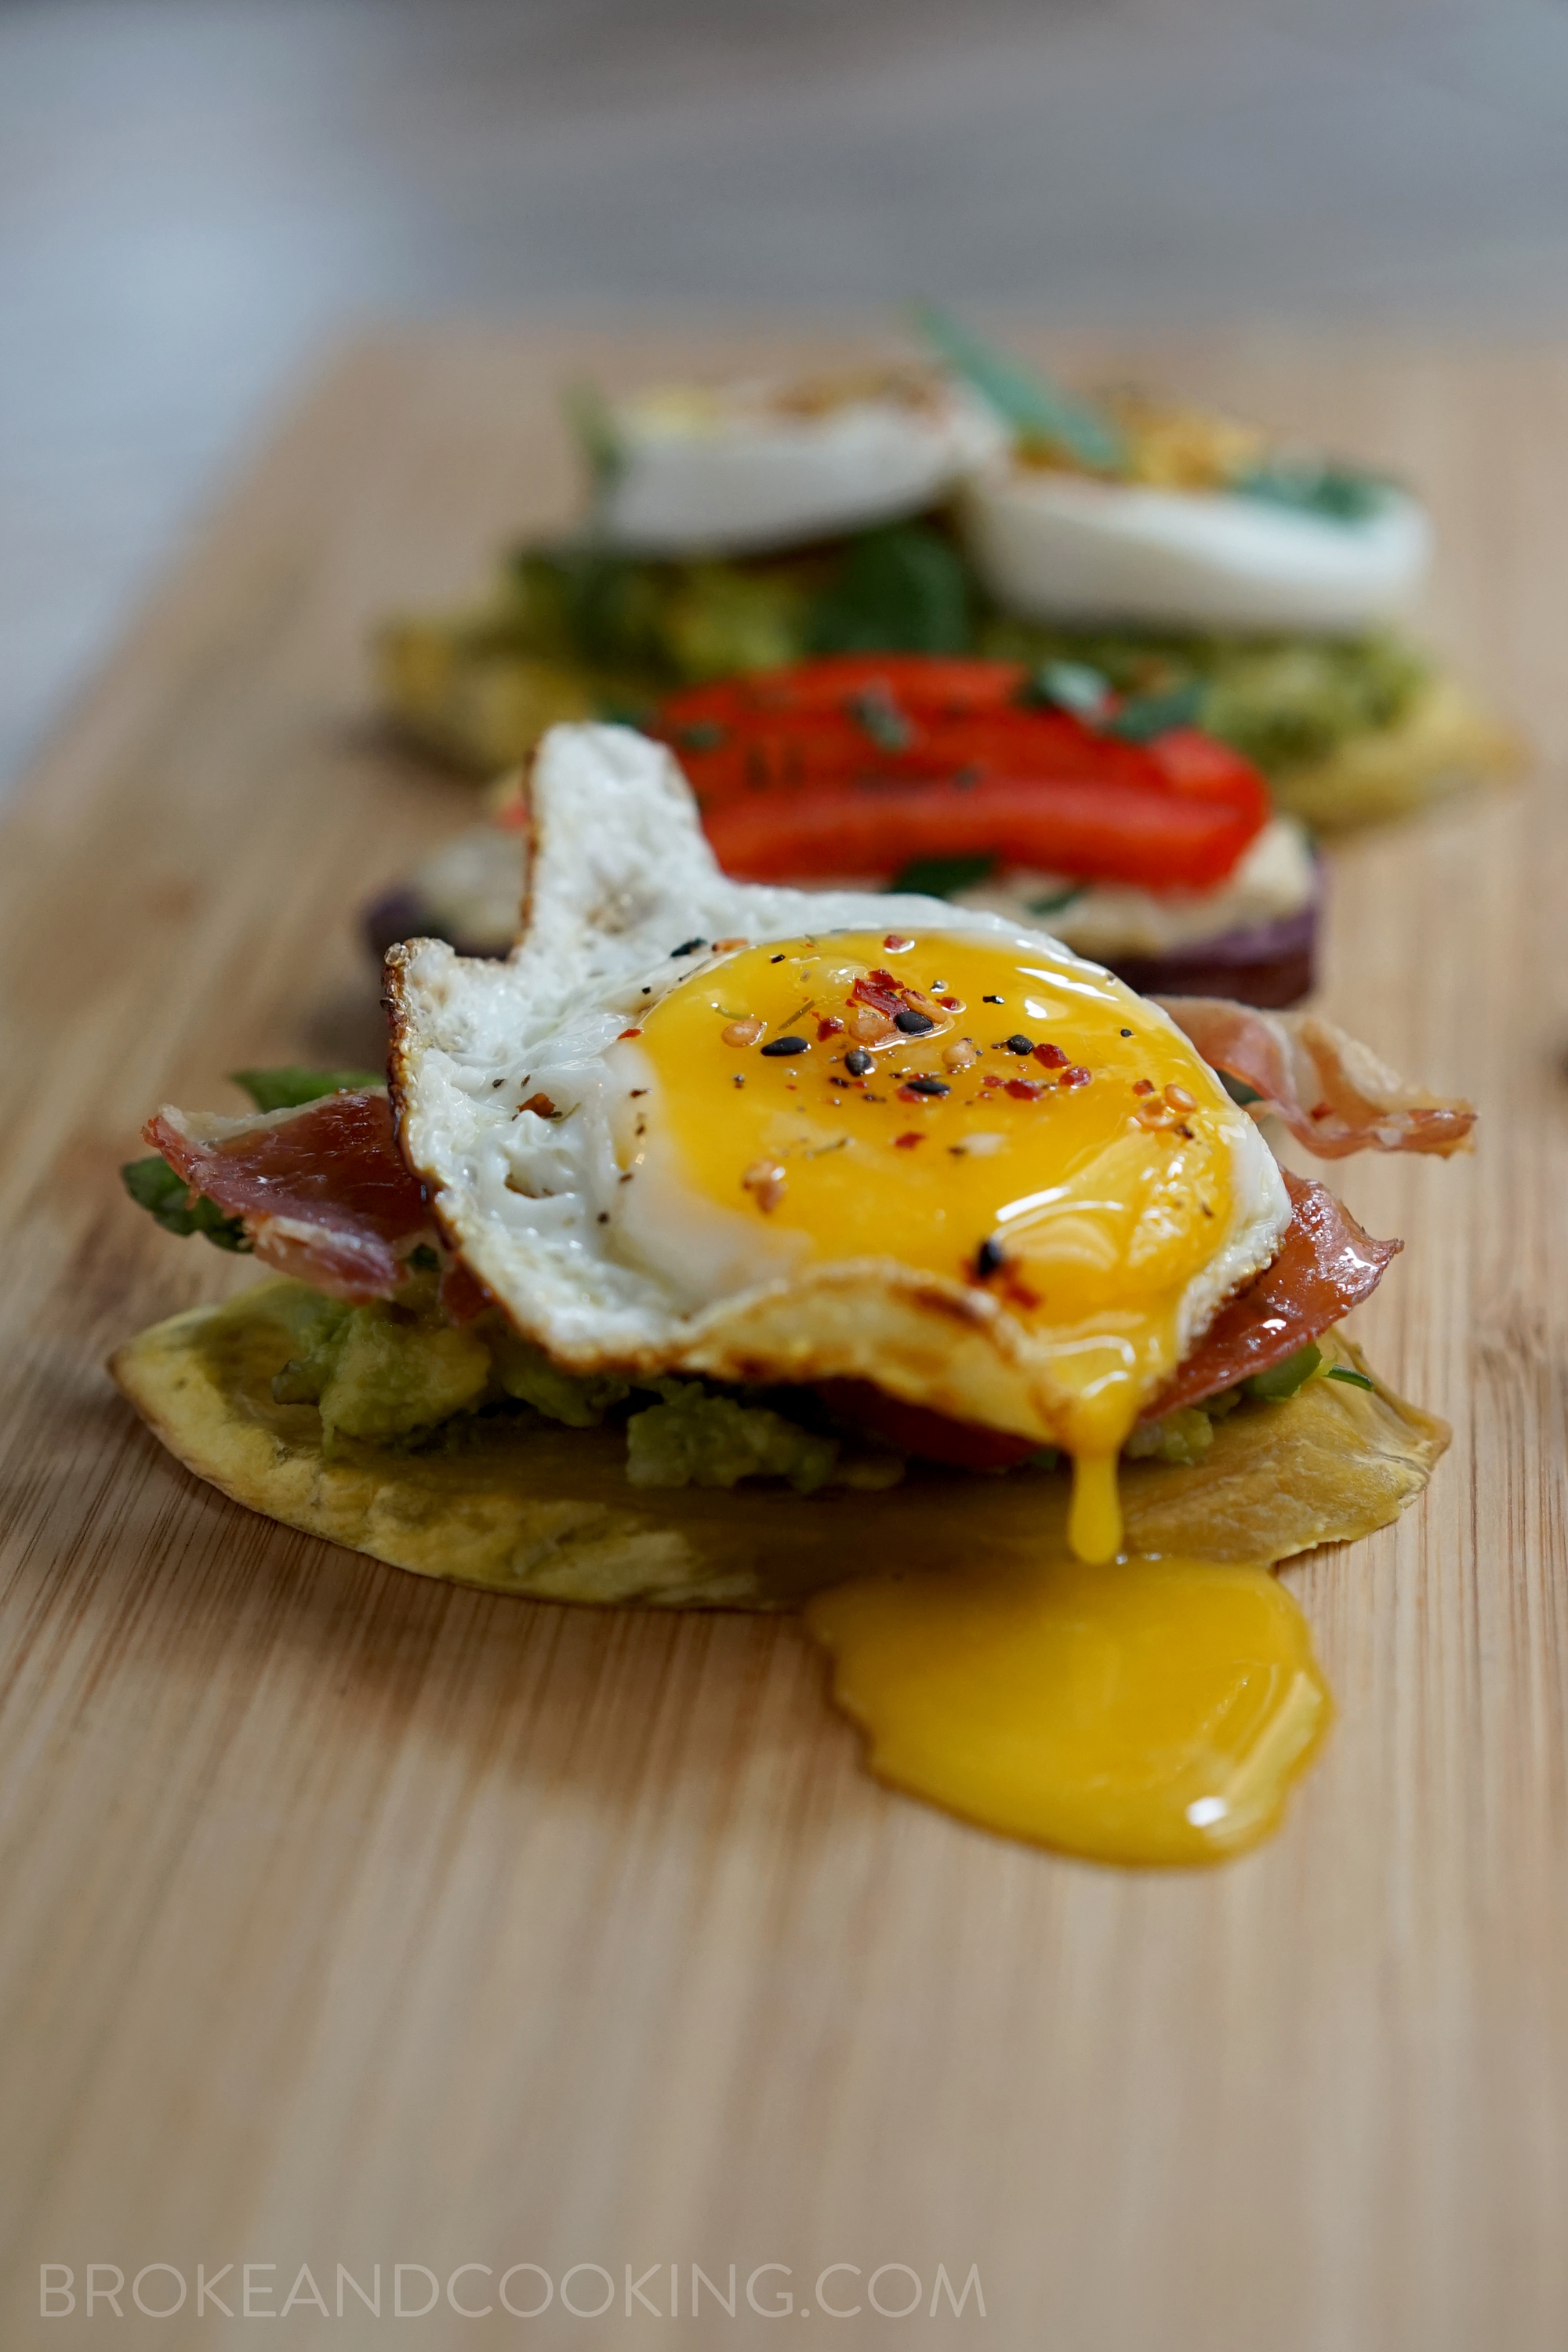 Sweet Potato Toast with Smashed Avocado, Sautéed Asparagus, Crispy Prosciutto, and Egg